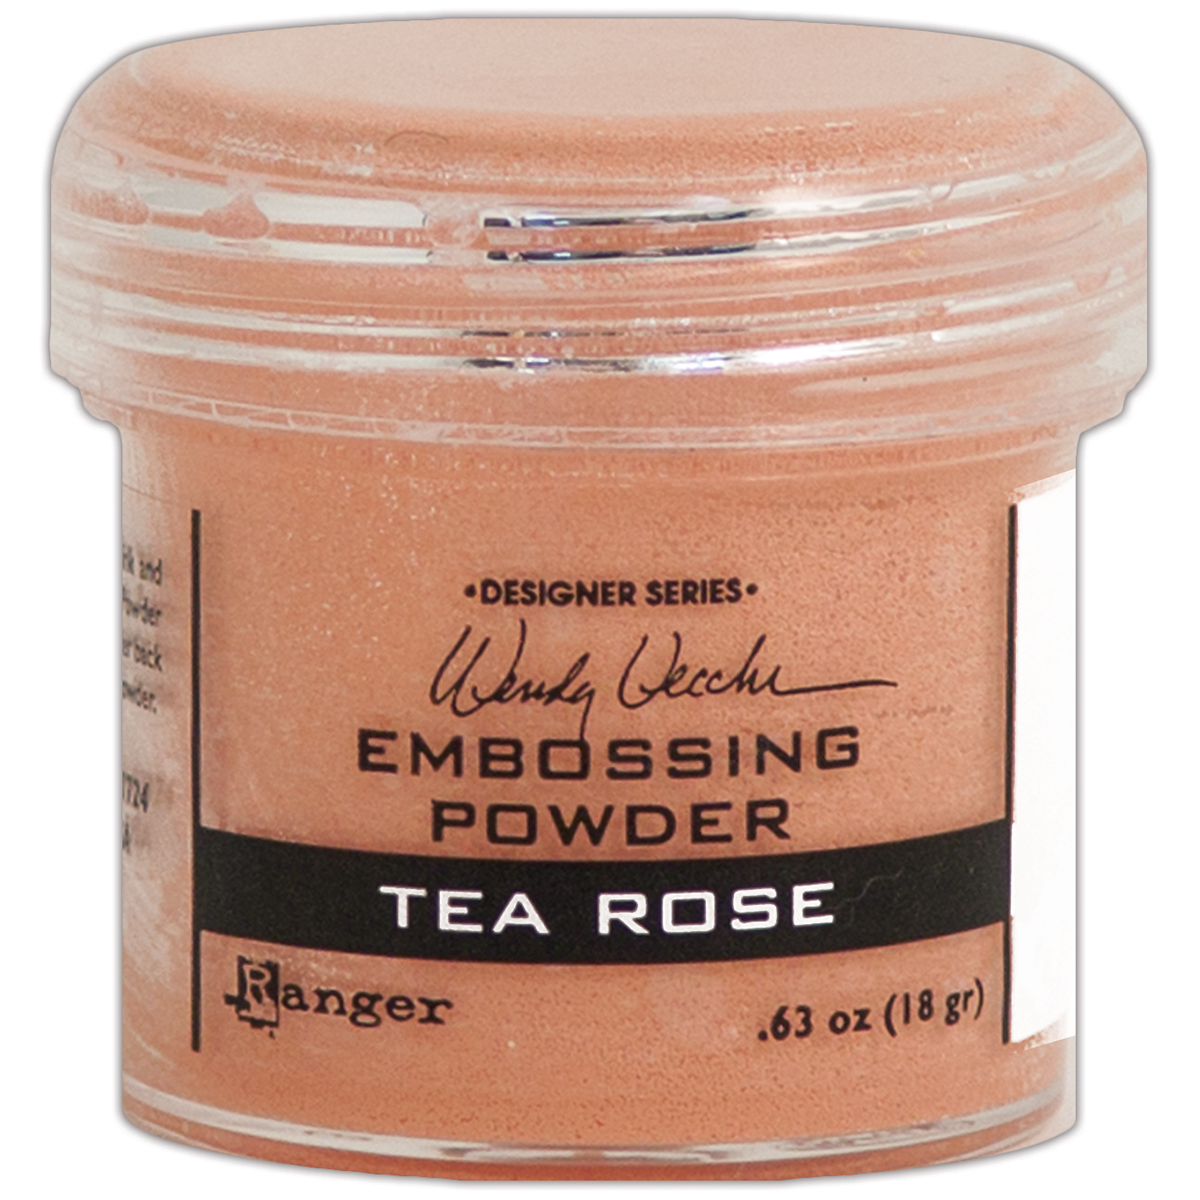 Wendy Vecchi Embossing Powder -Tea Rose